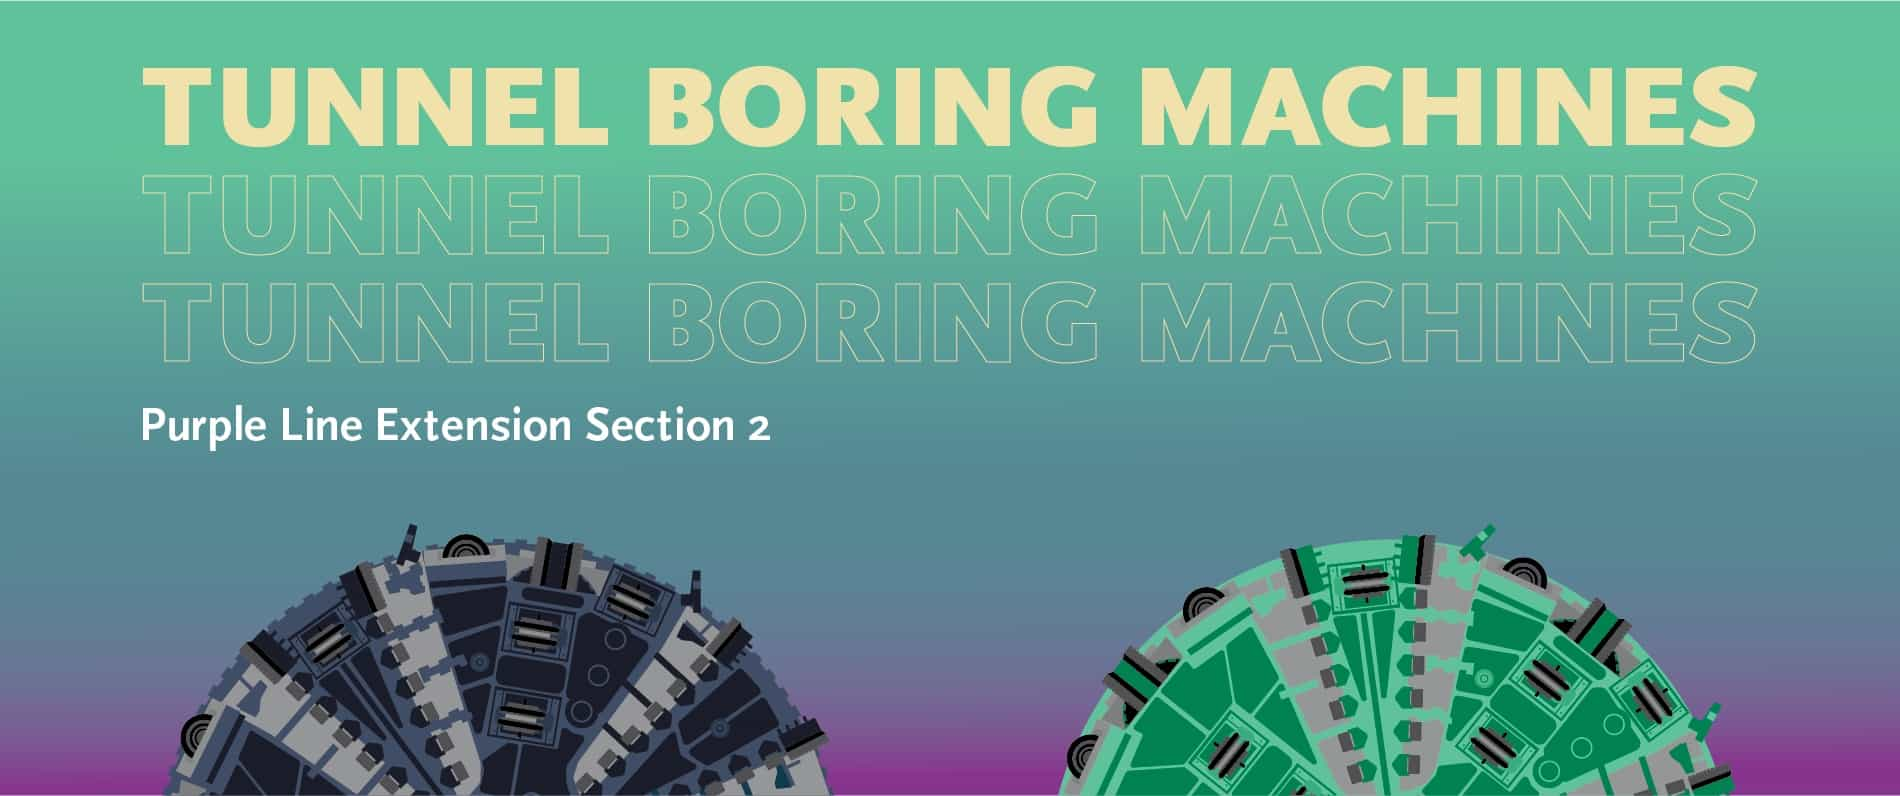 Art and Naming Contest: Purple Line Extension Tunnel Boring Machines (TBM)